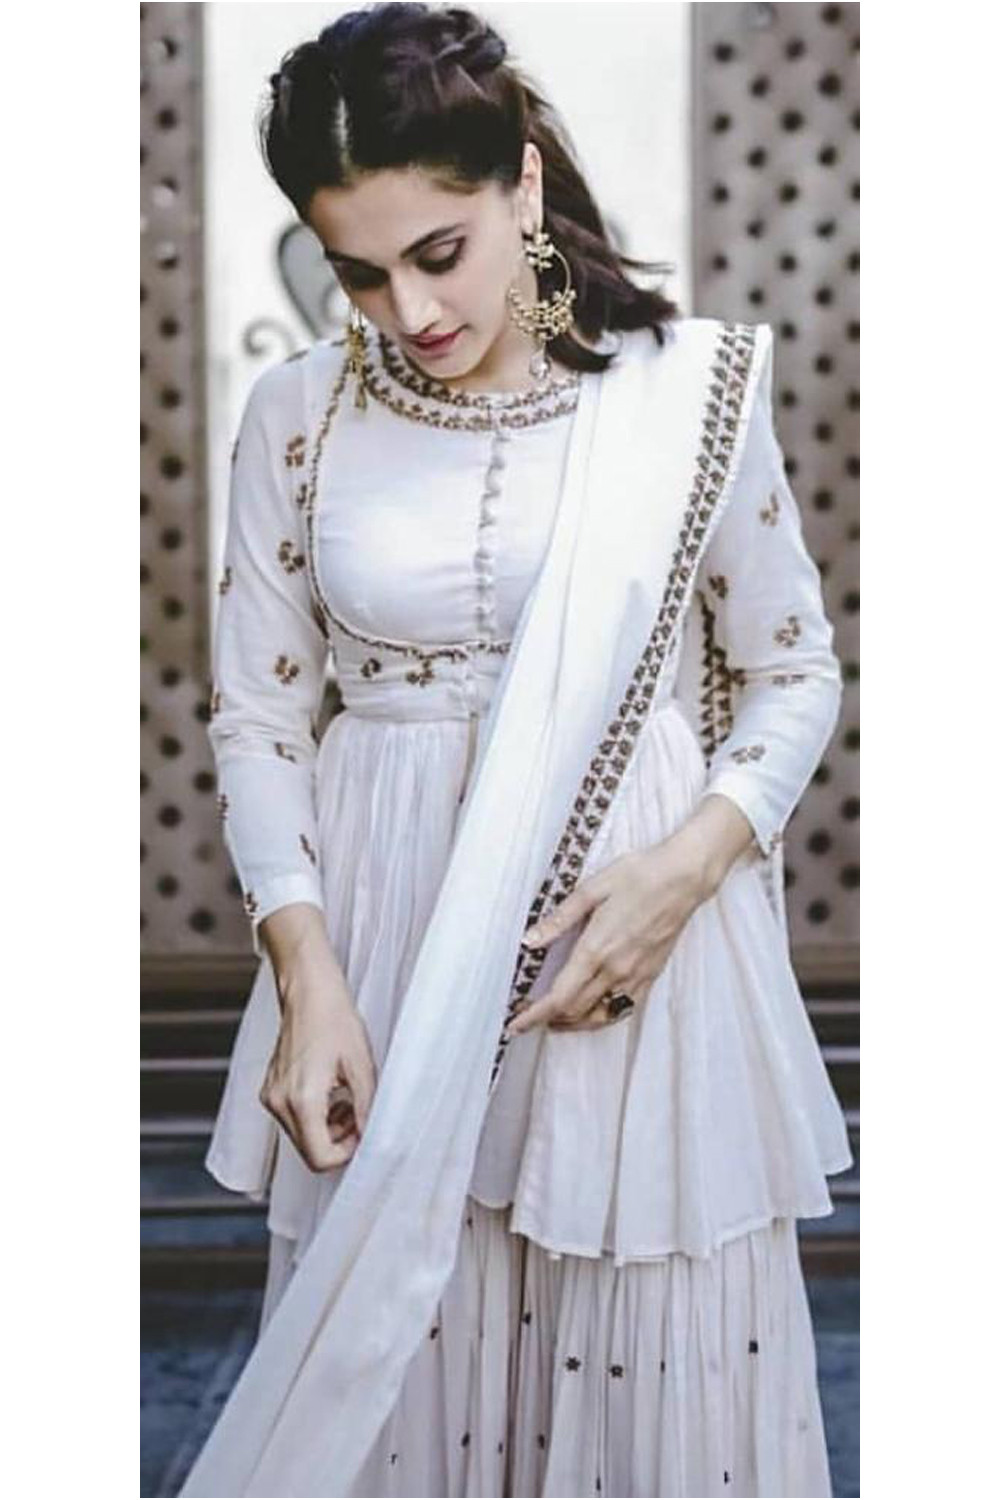 Taapsee Pannu Wonderful White Colored Bollywood Sharara Suit